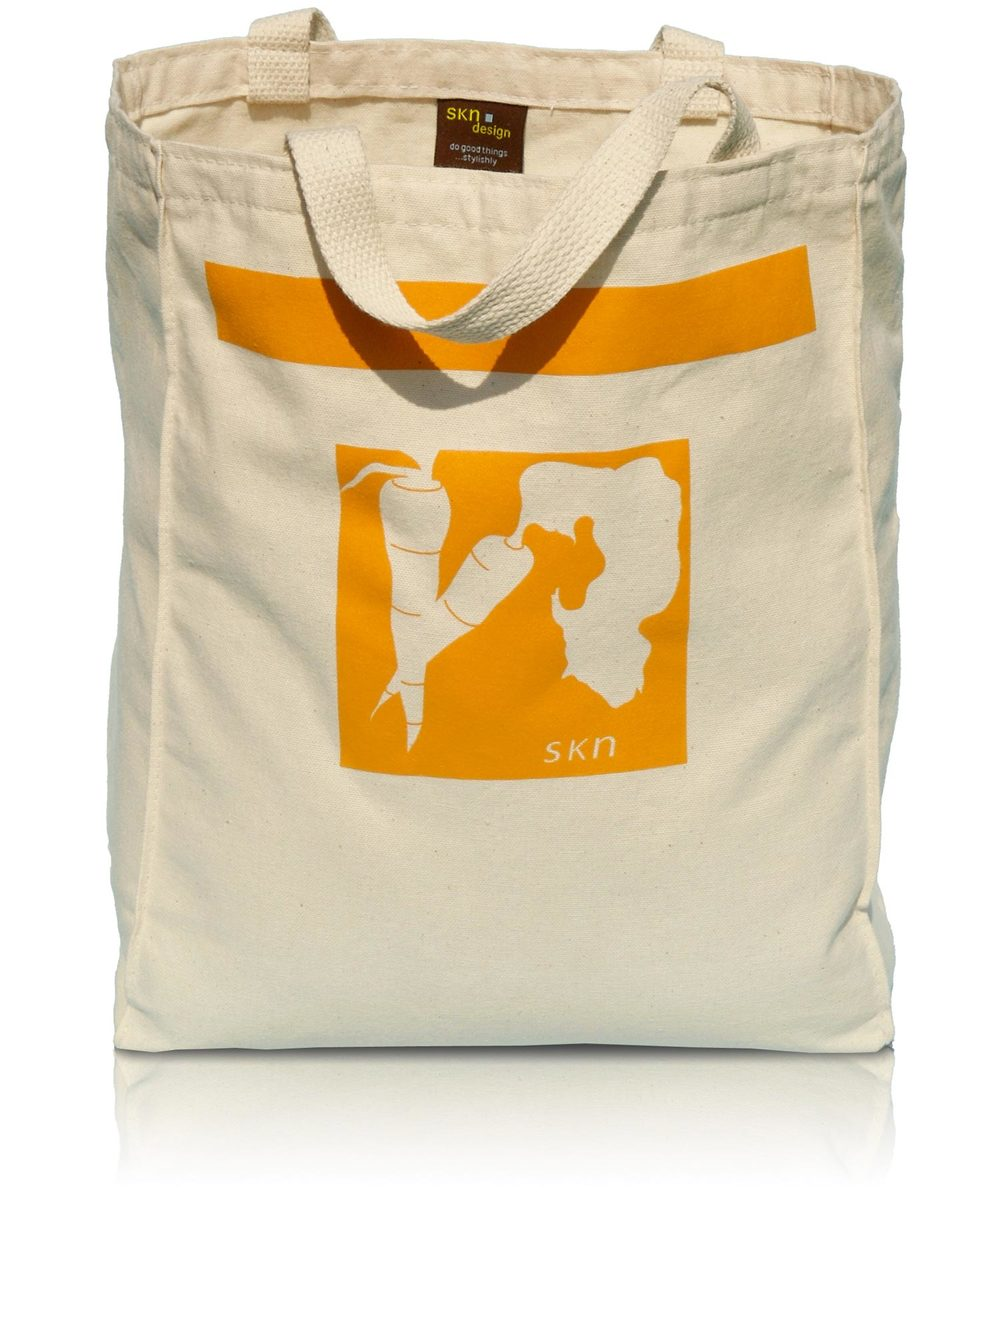 Reusable Grocery Tote—The Carrot Bag